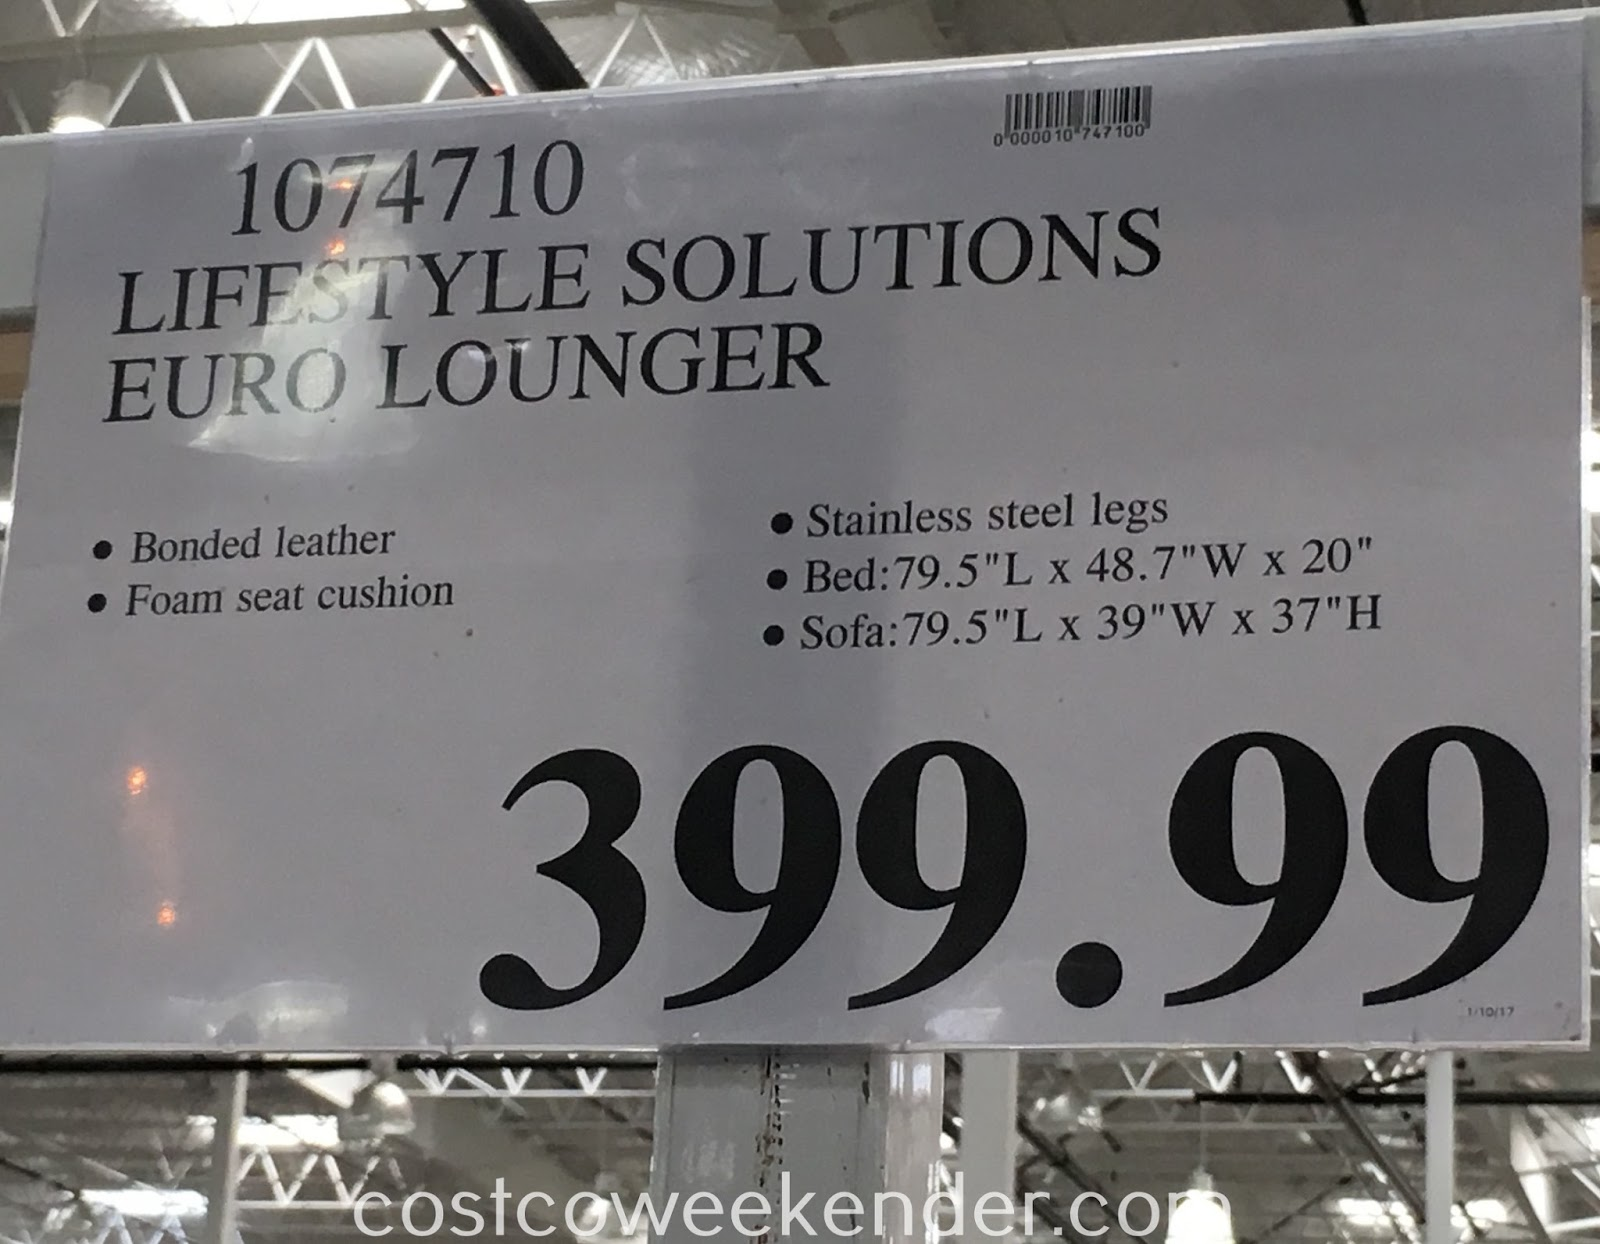 Deal for the Lifestyle Solutions Euro Lounger at Costco